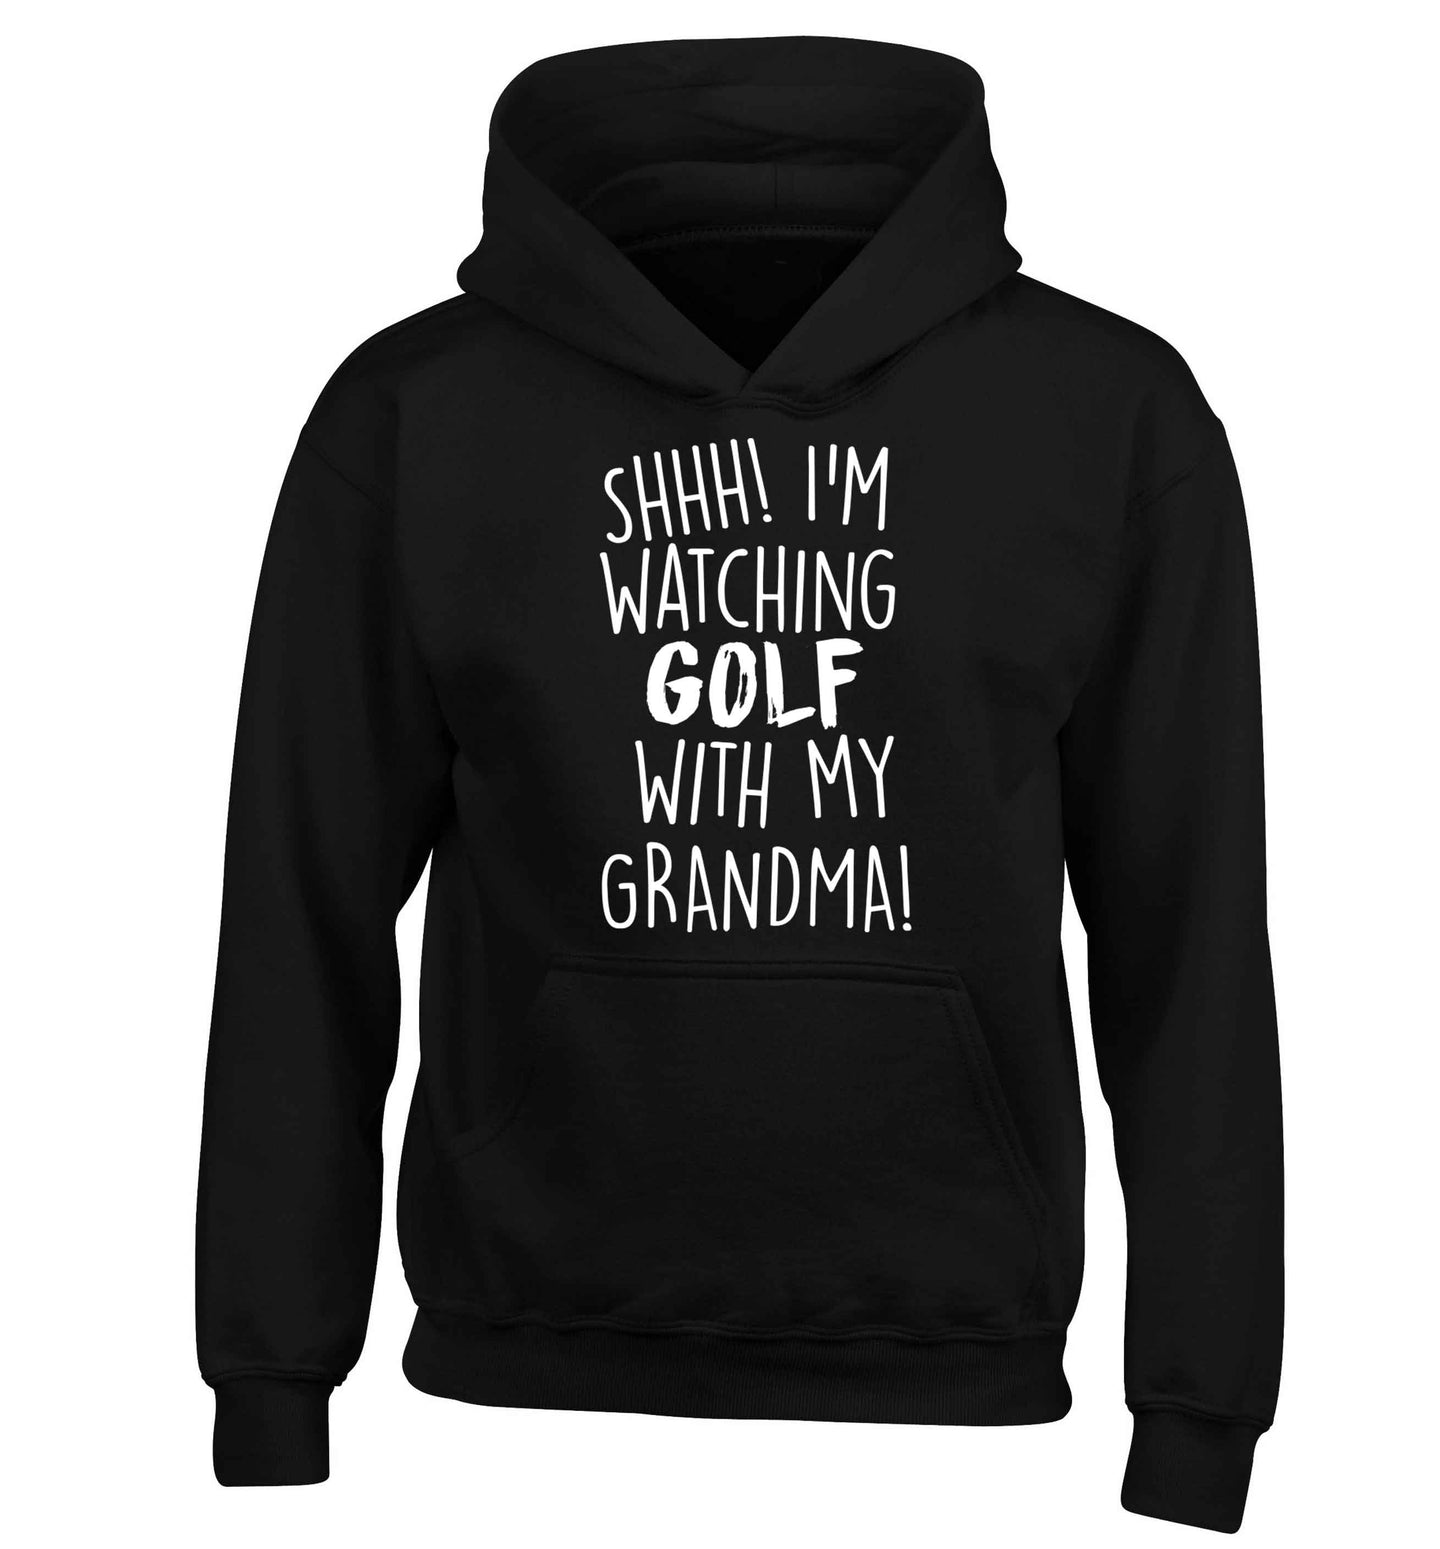 Shh I'm watching golf with my grandma children's black hoodie 12-13 Years